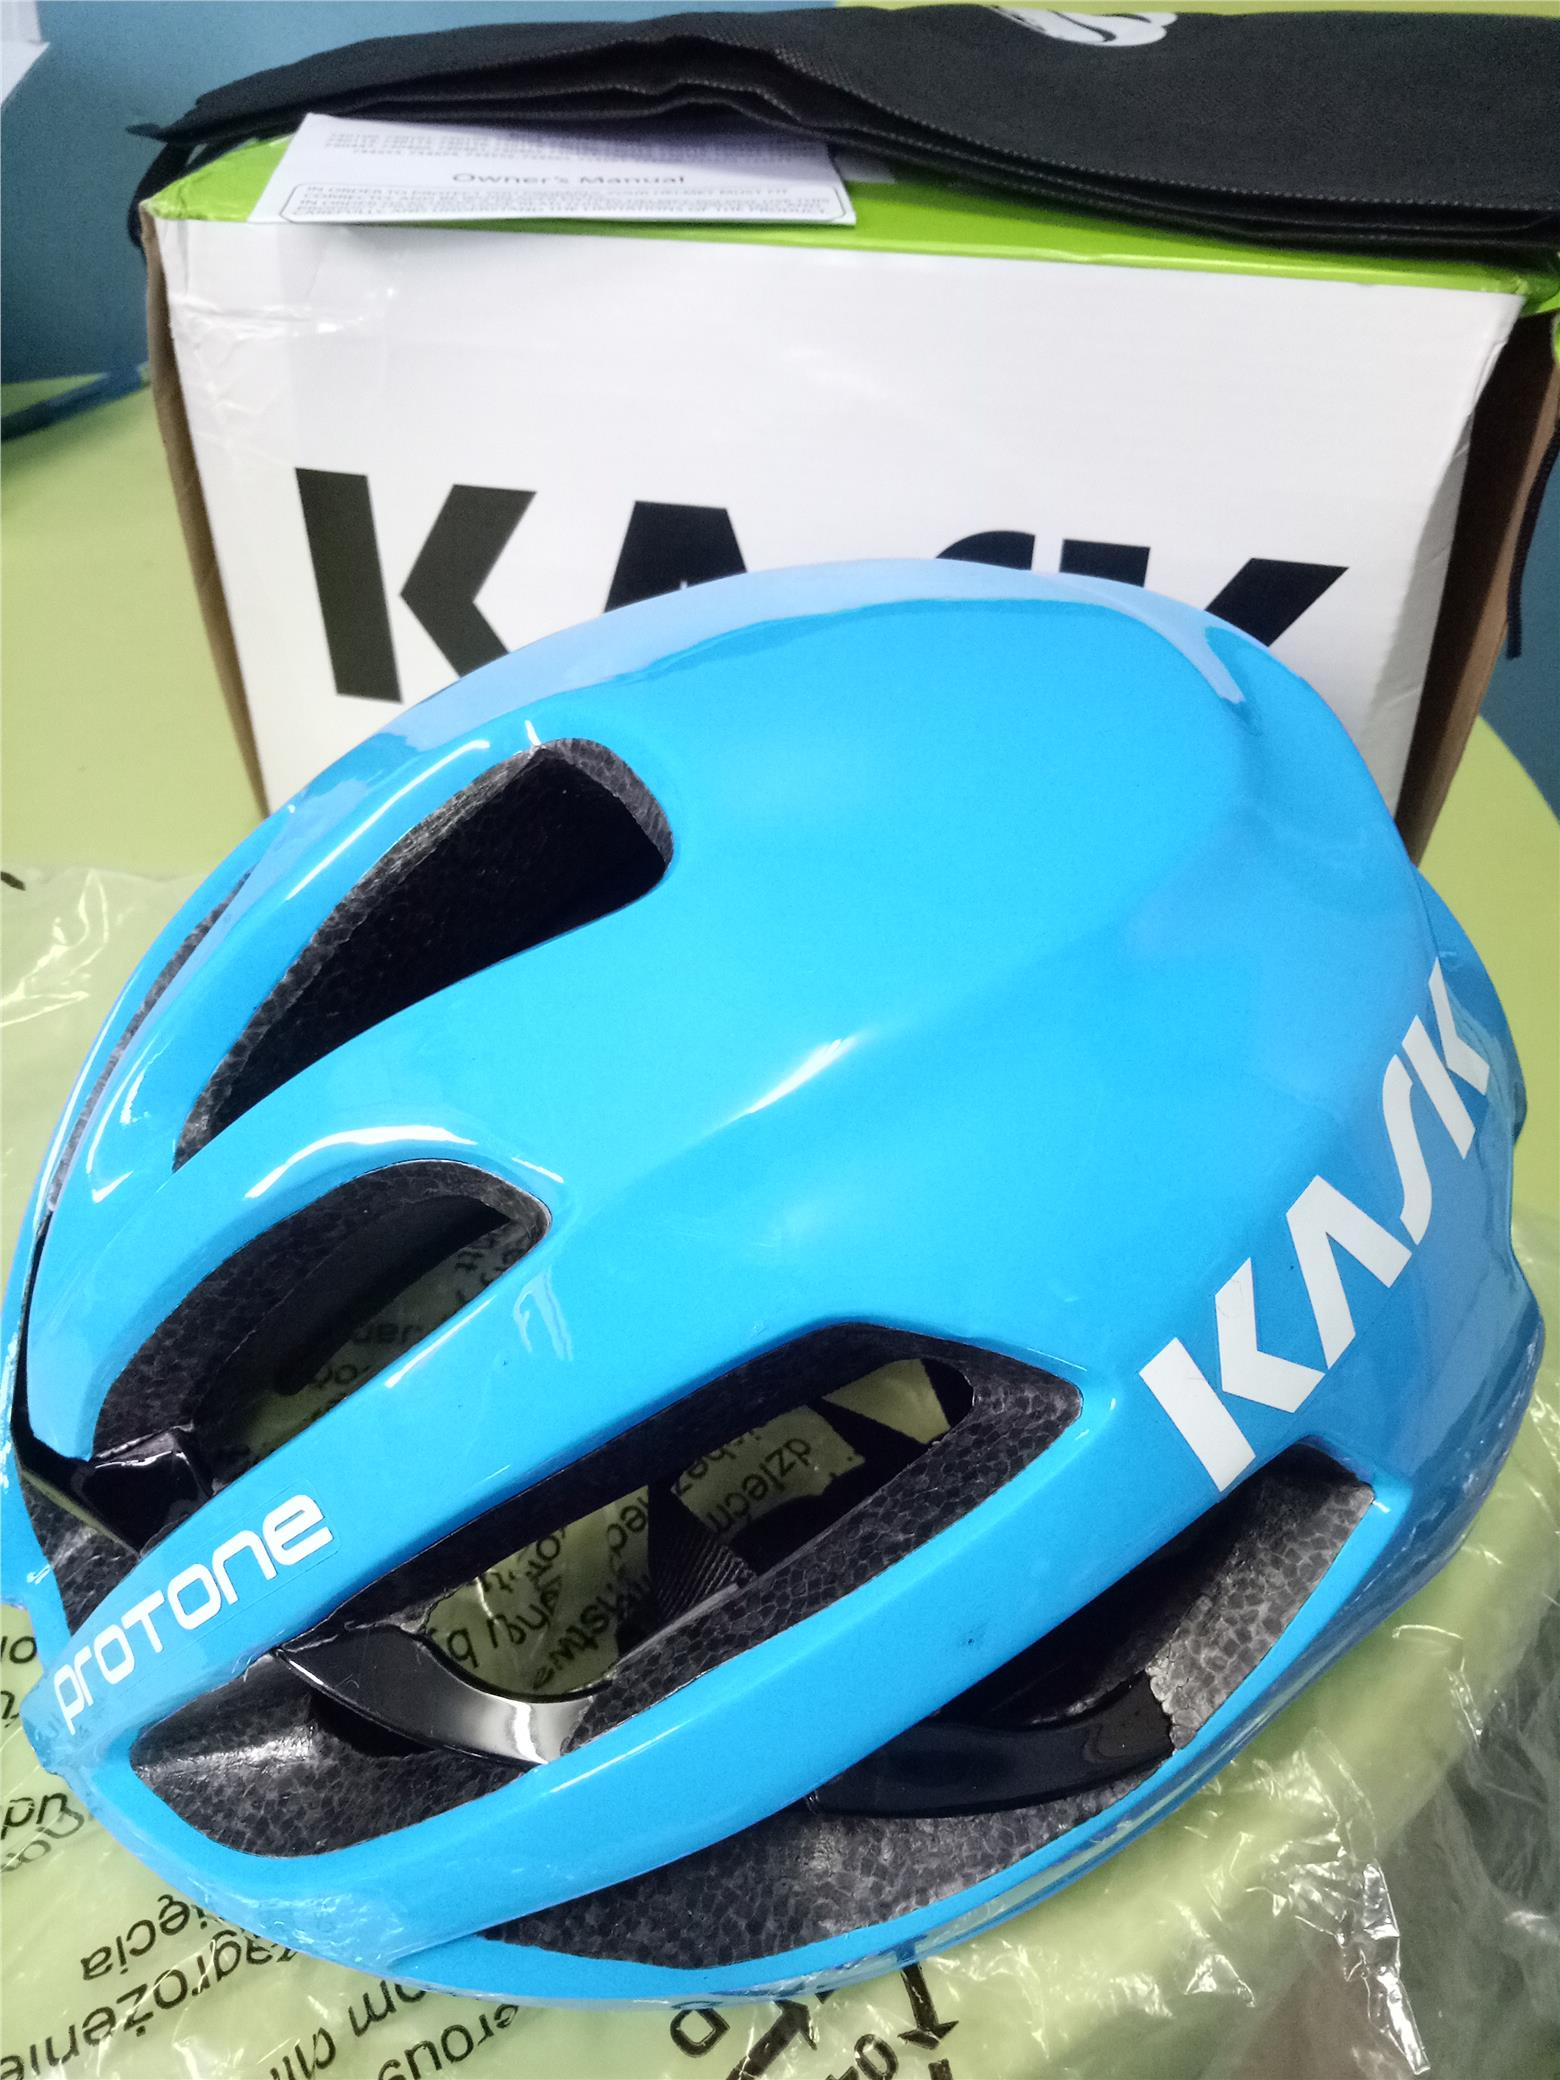 Kask Protone High Quality Bicycle Helmet - NEW - Clearance Sale